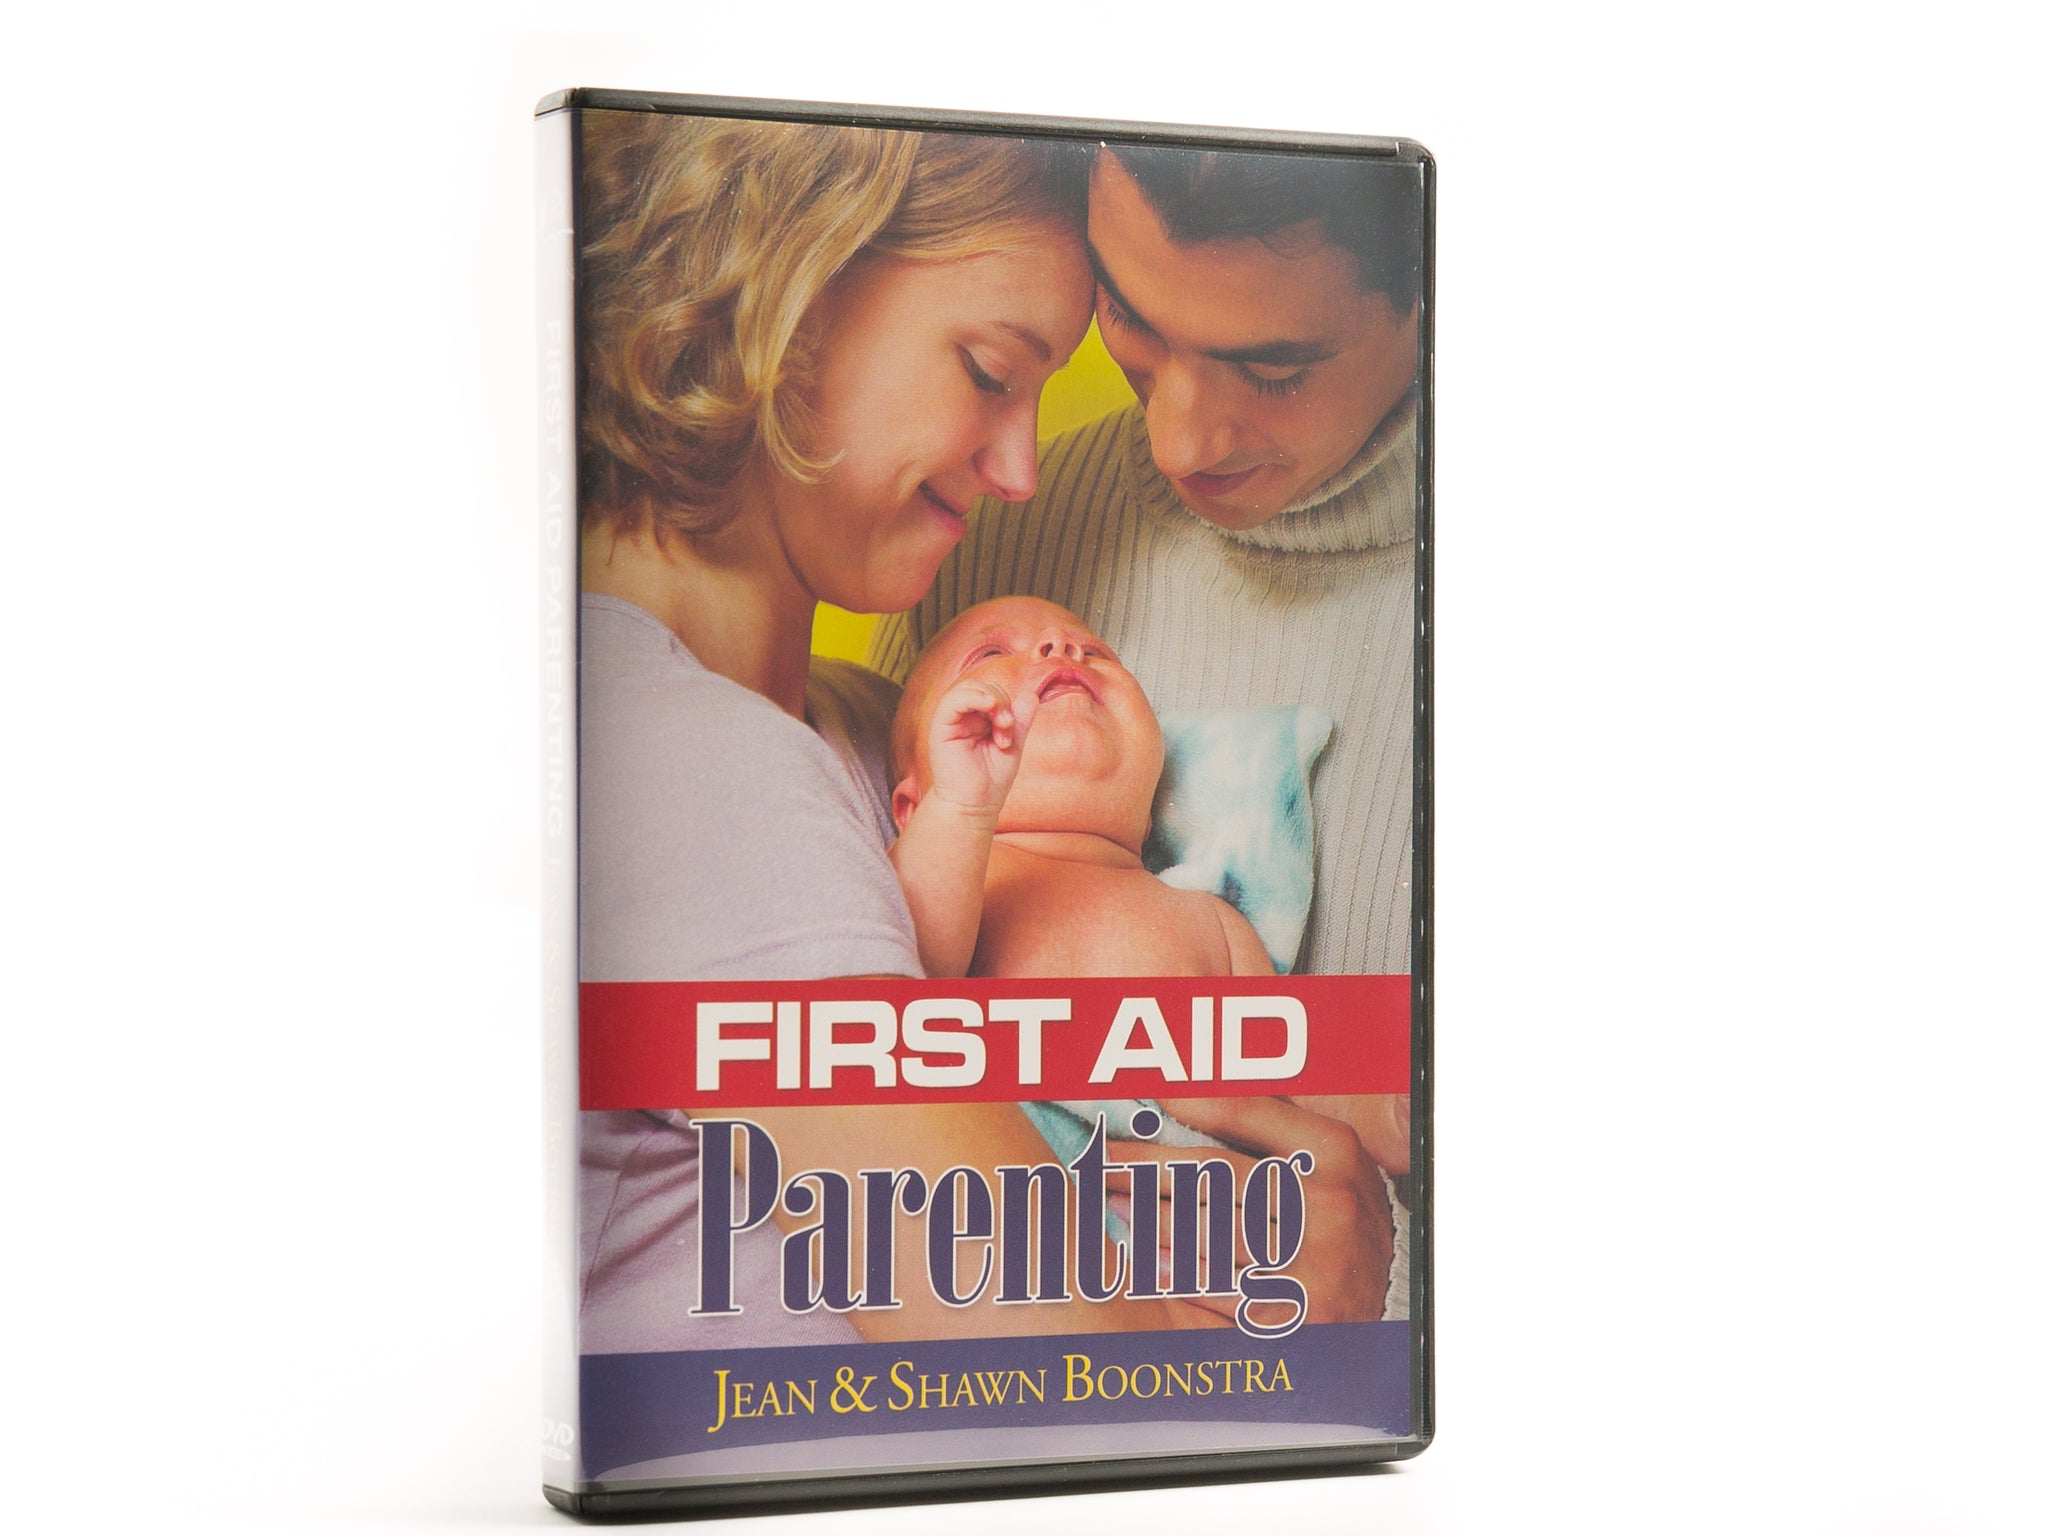 First Aid Parenting - DVD by Shawn and Jean Boonstra